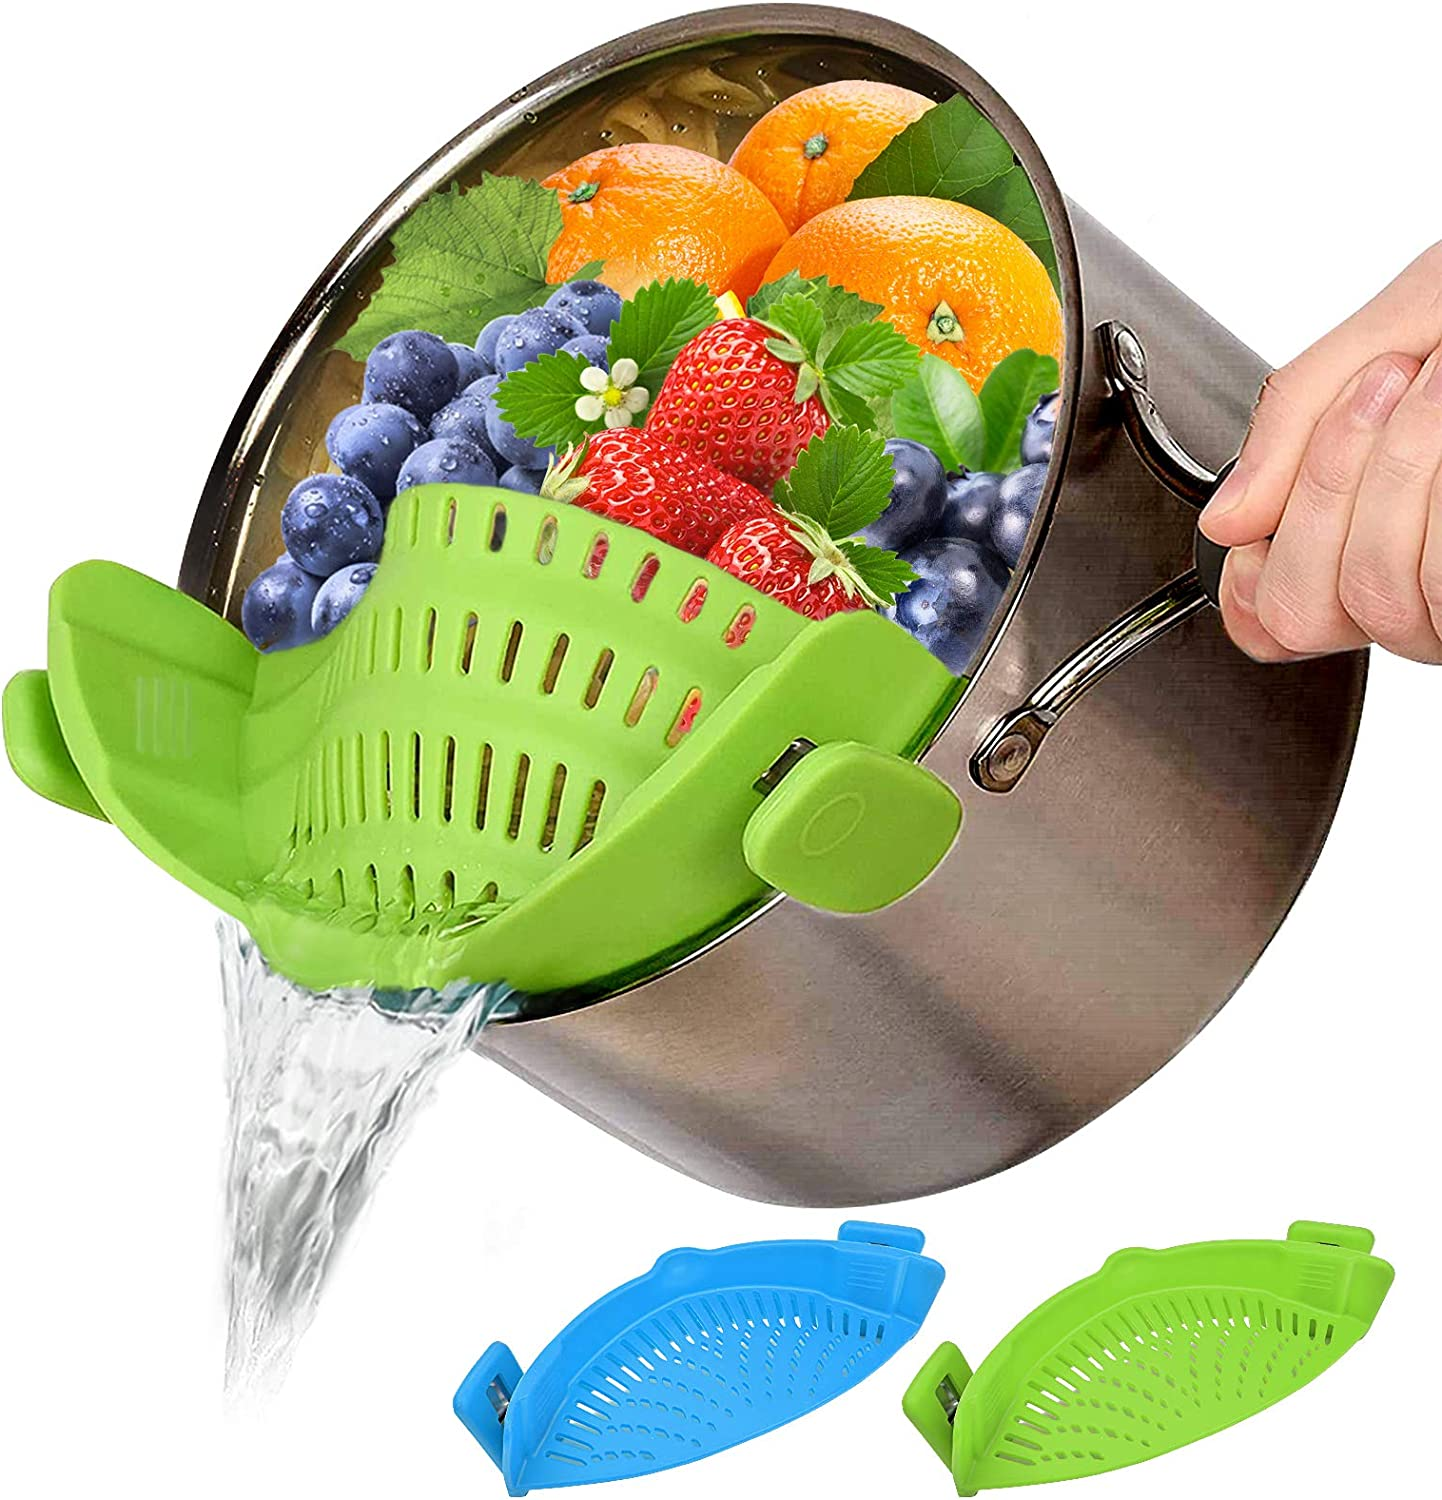 Food Strainer Silicone, 2 Pack Clip-On Food Filter Strainer, Fine Food Strainer for Kitchen, Colanders& Food Strainers, Food Strainer Plastic Drainer, for All Pots Pan Bowls, Pasta Spaghetti Vegetable